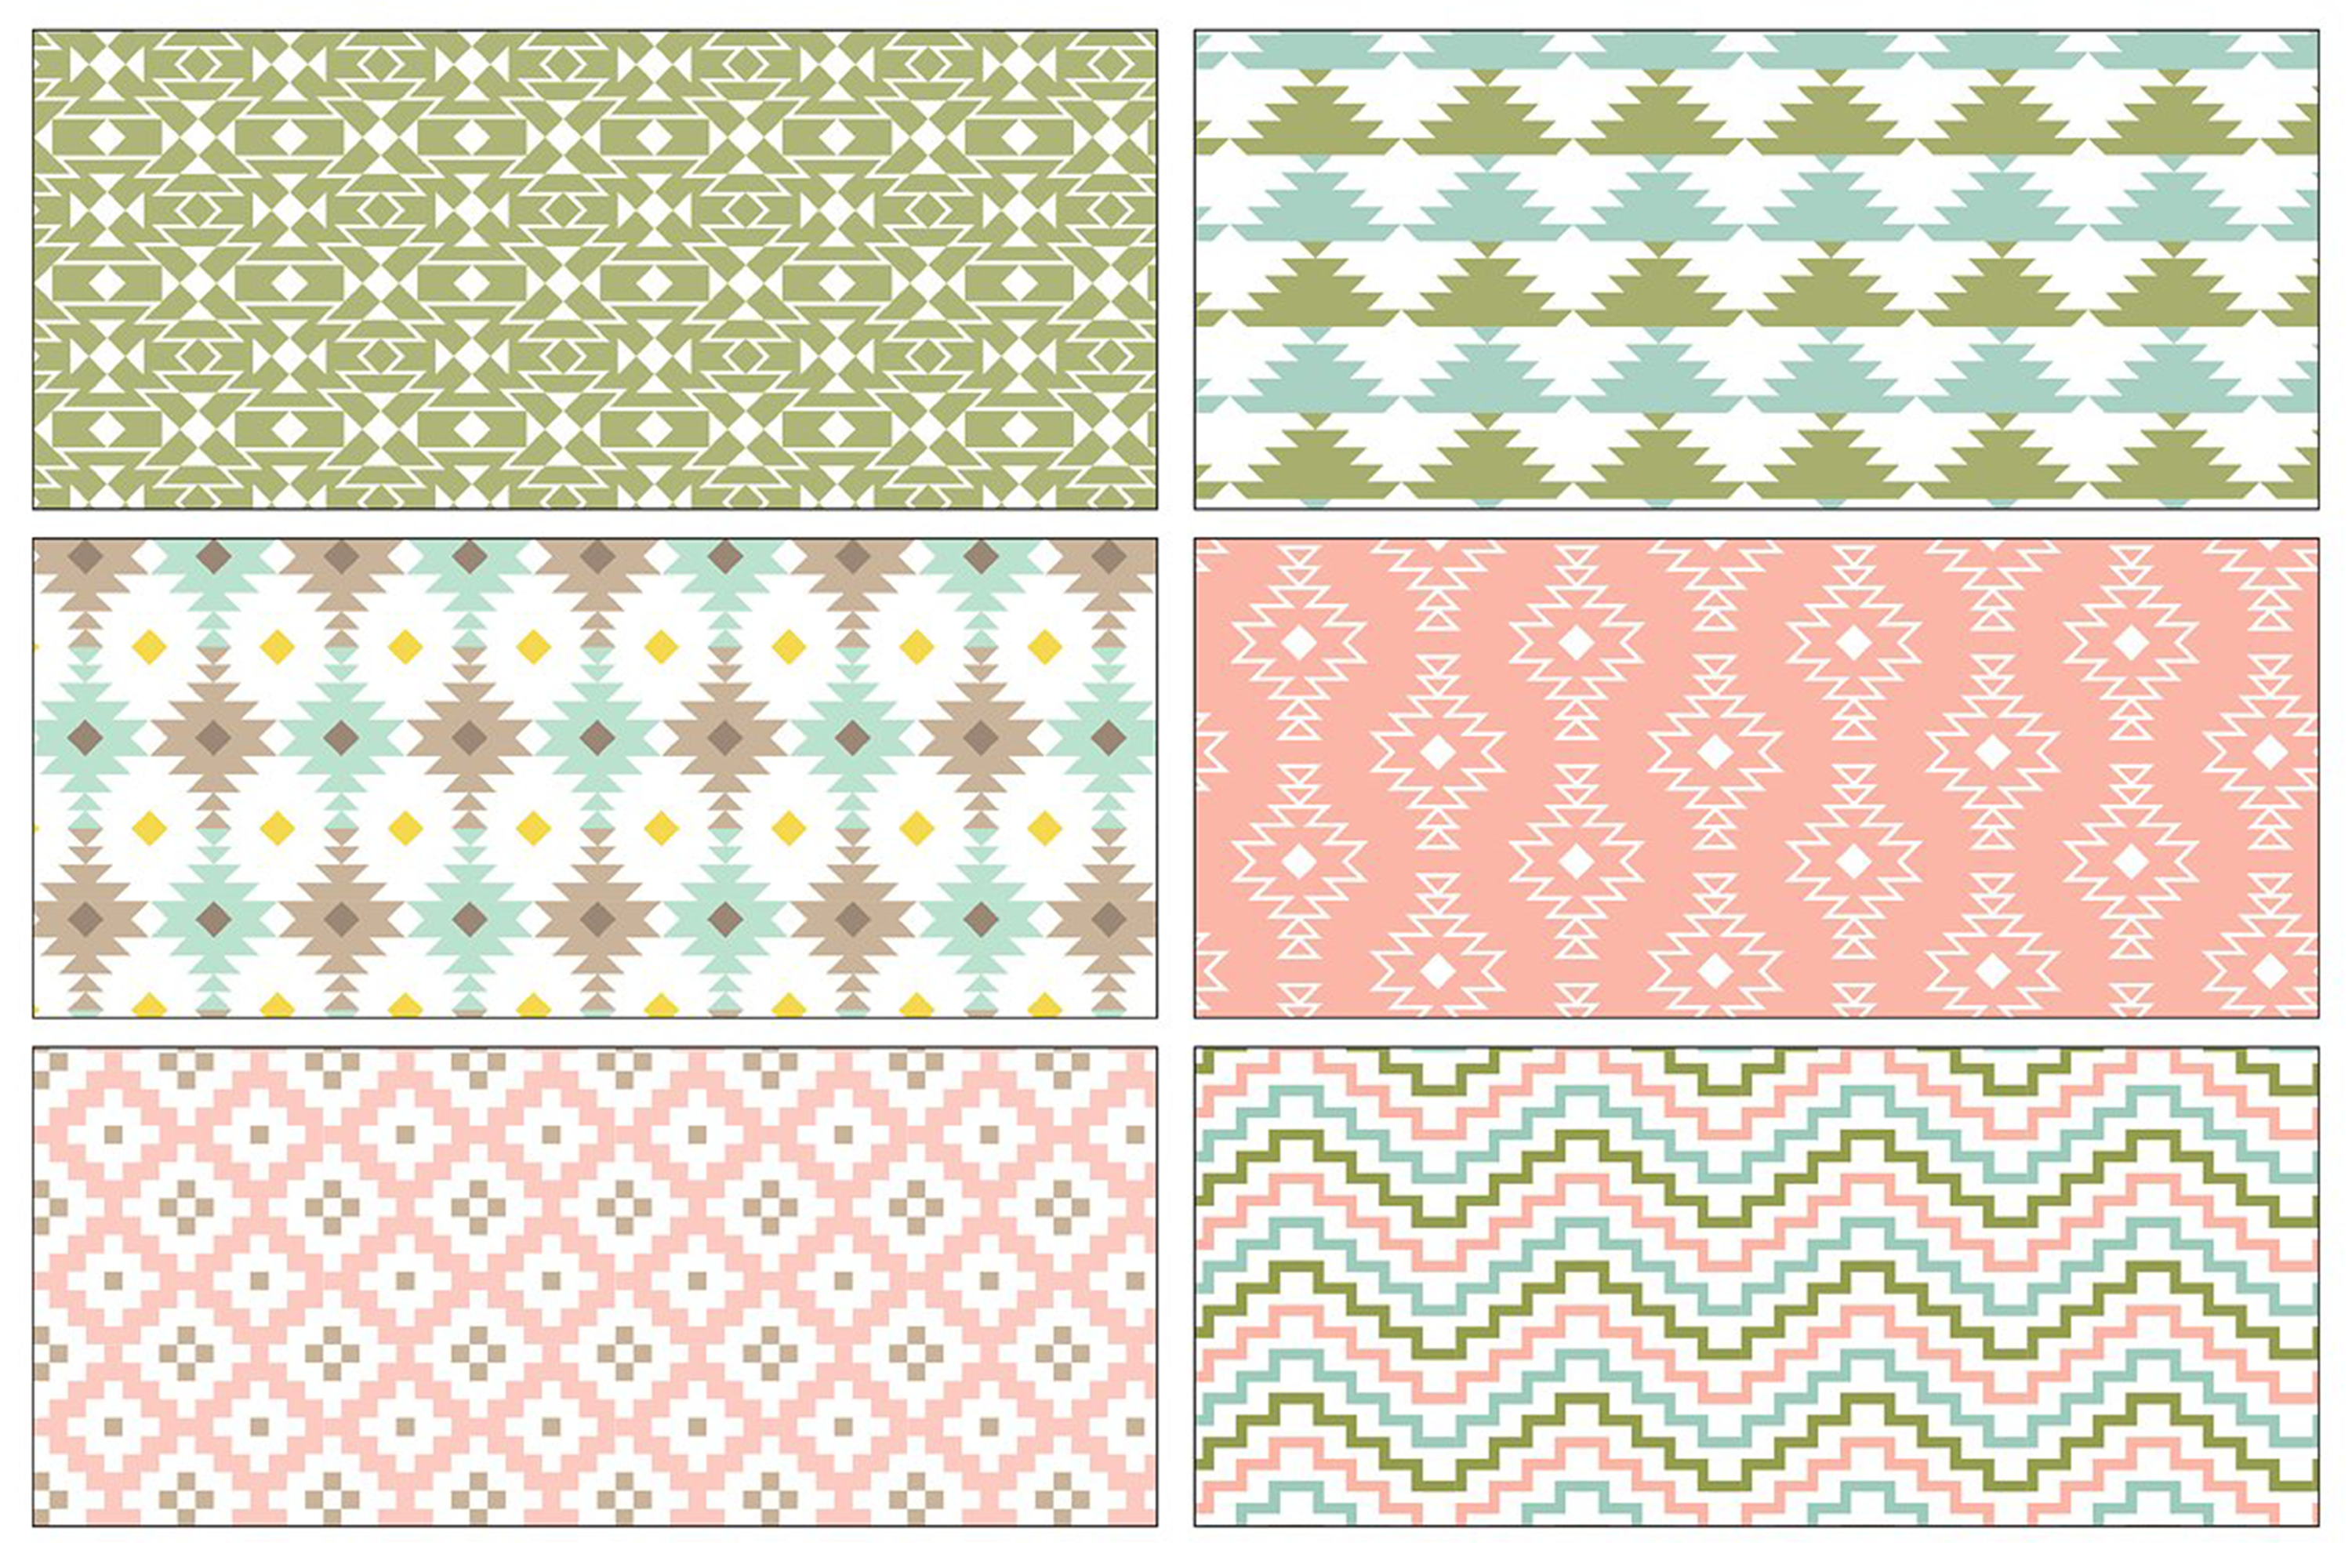 Seamless Pastel Native American Patterns example image 4